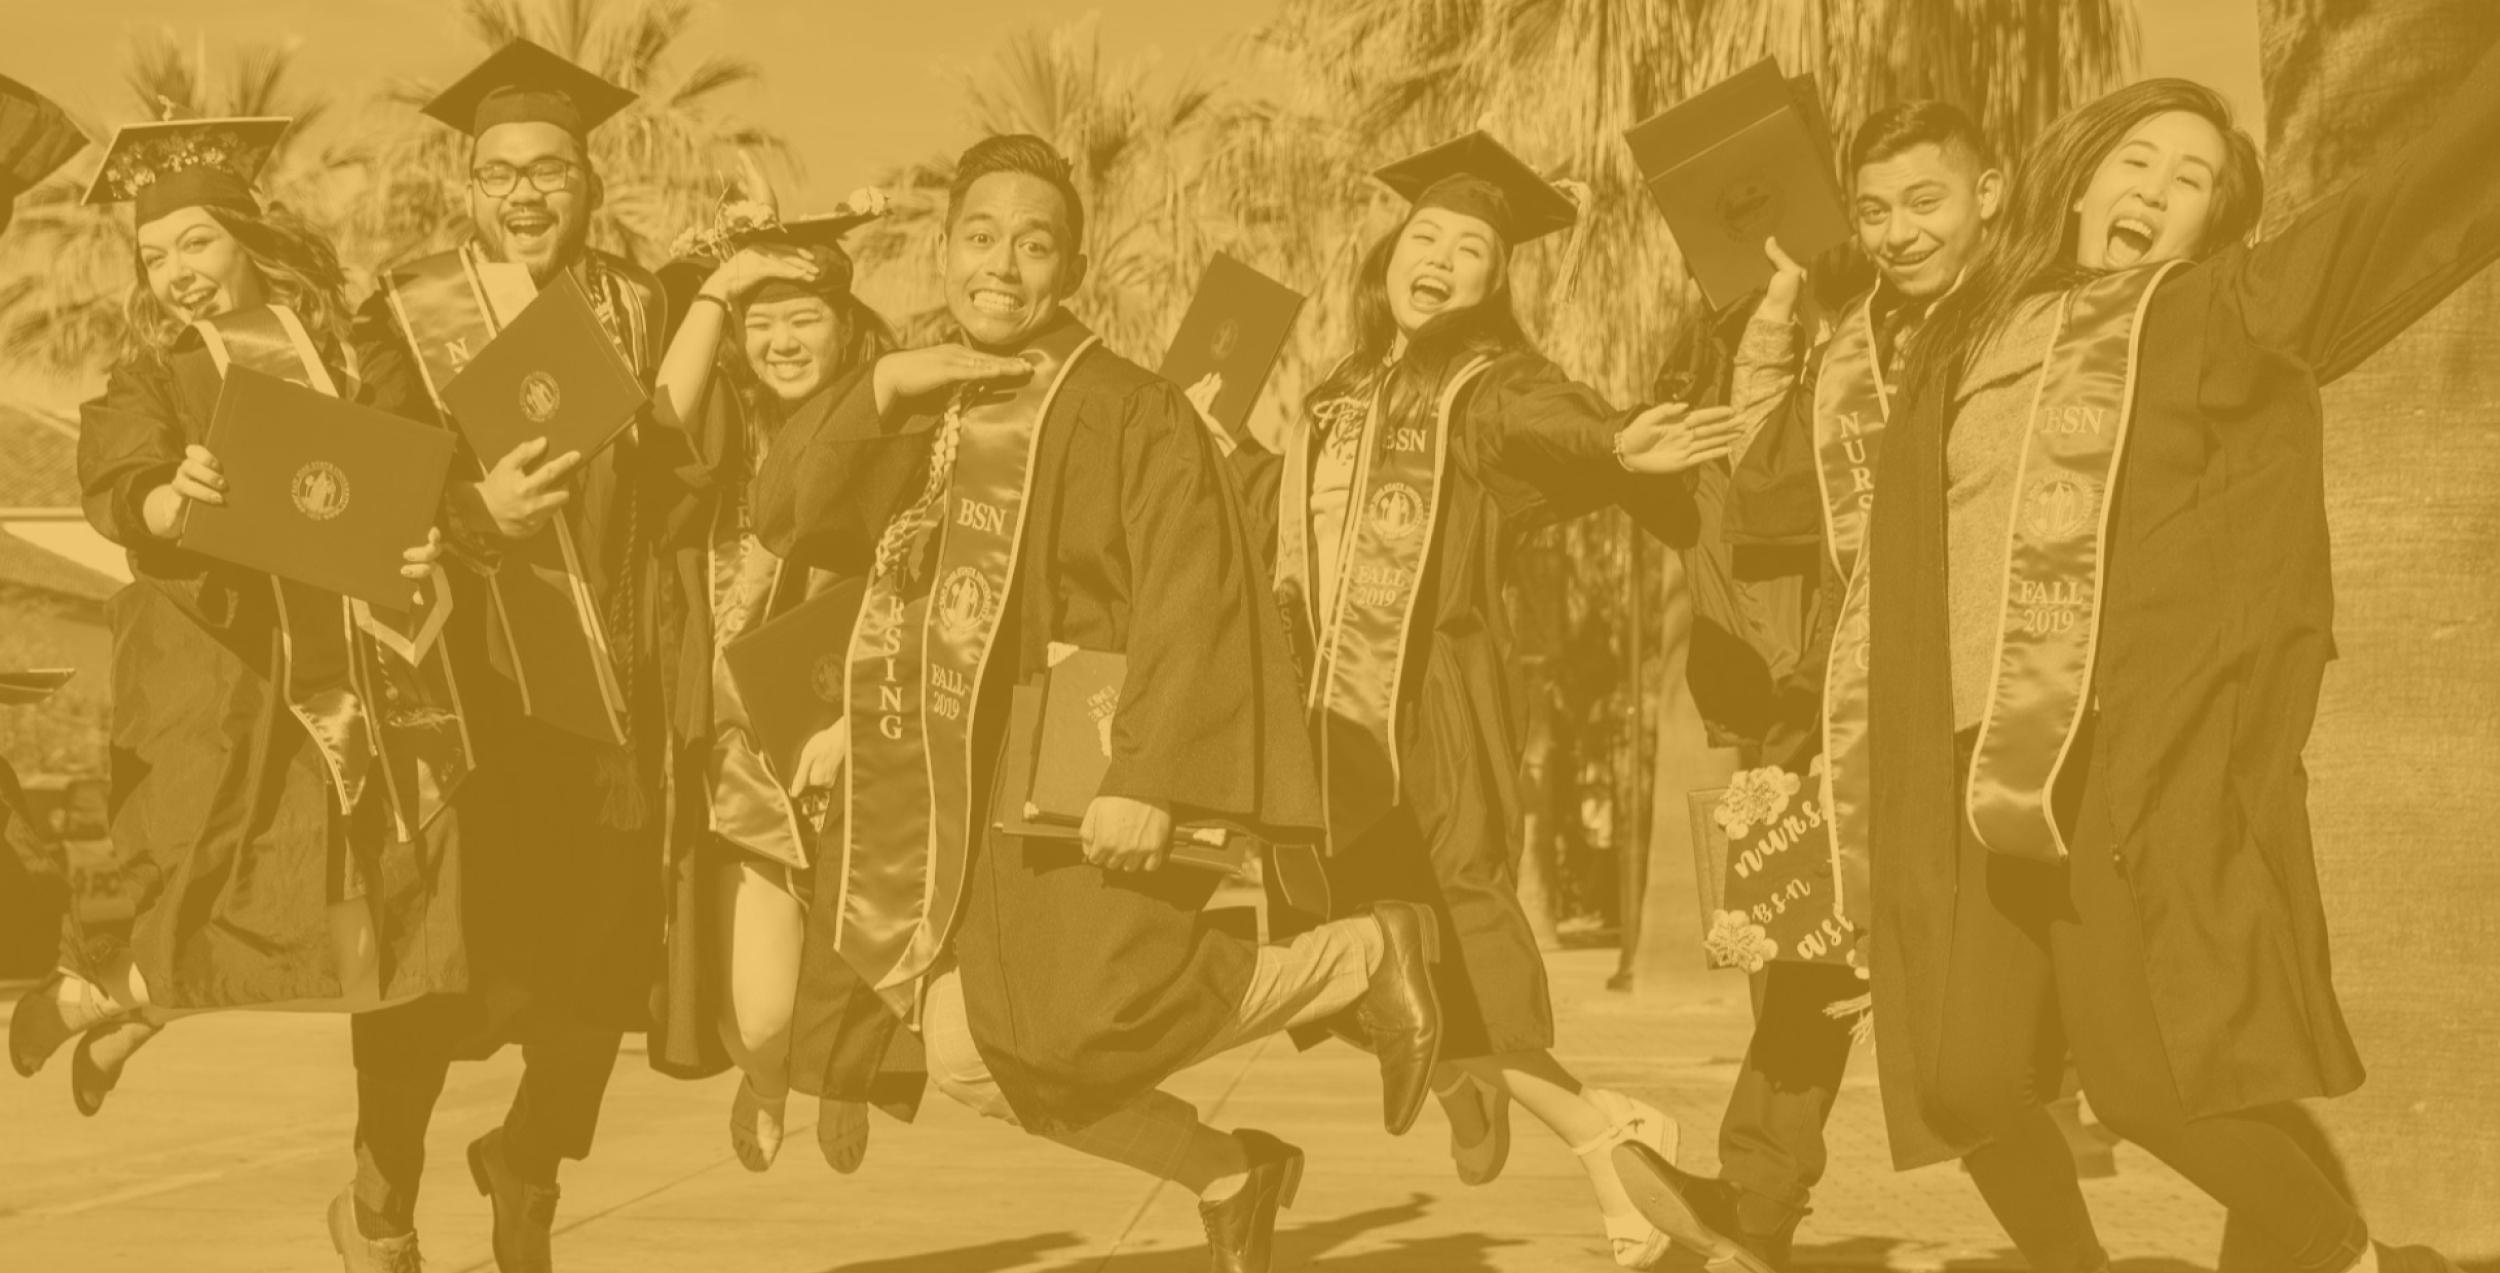 Photo of graduates jumping in the air while wearing academic regalia